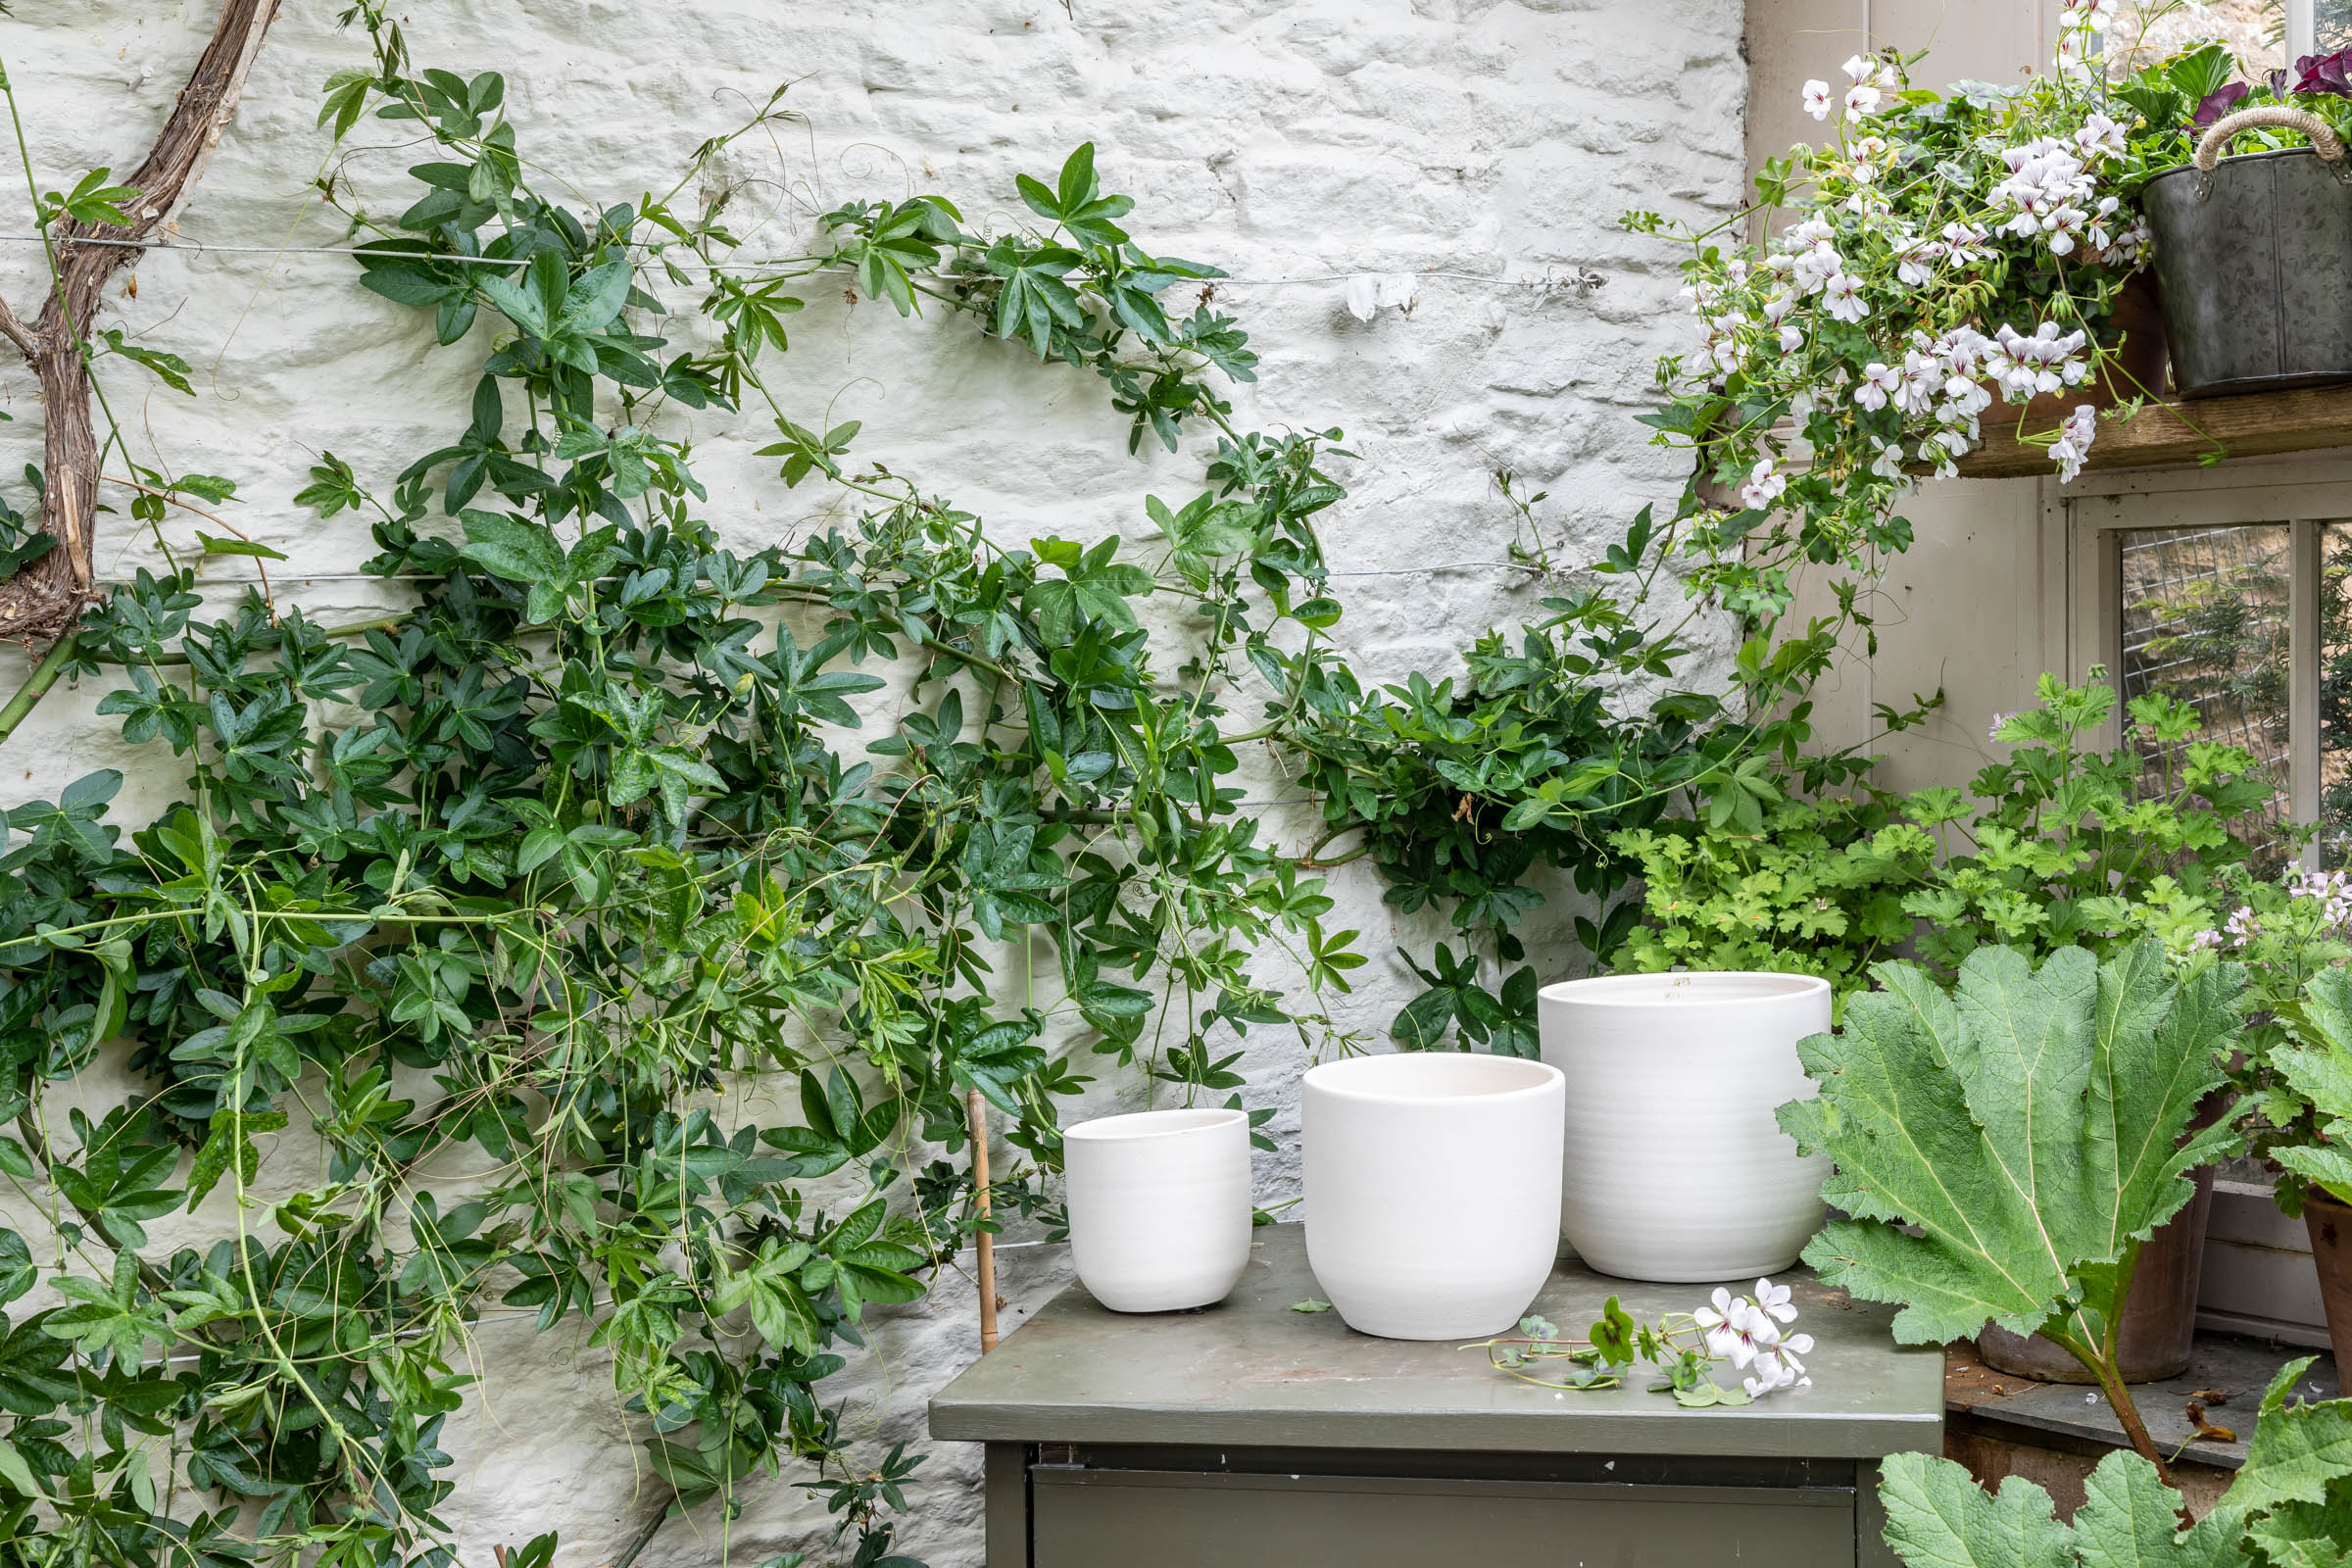 Plant care tips by Leaf Envy  How to repot your plant